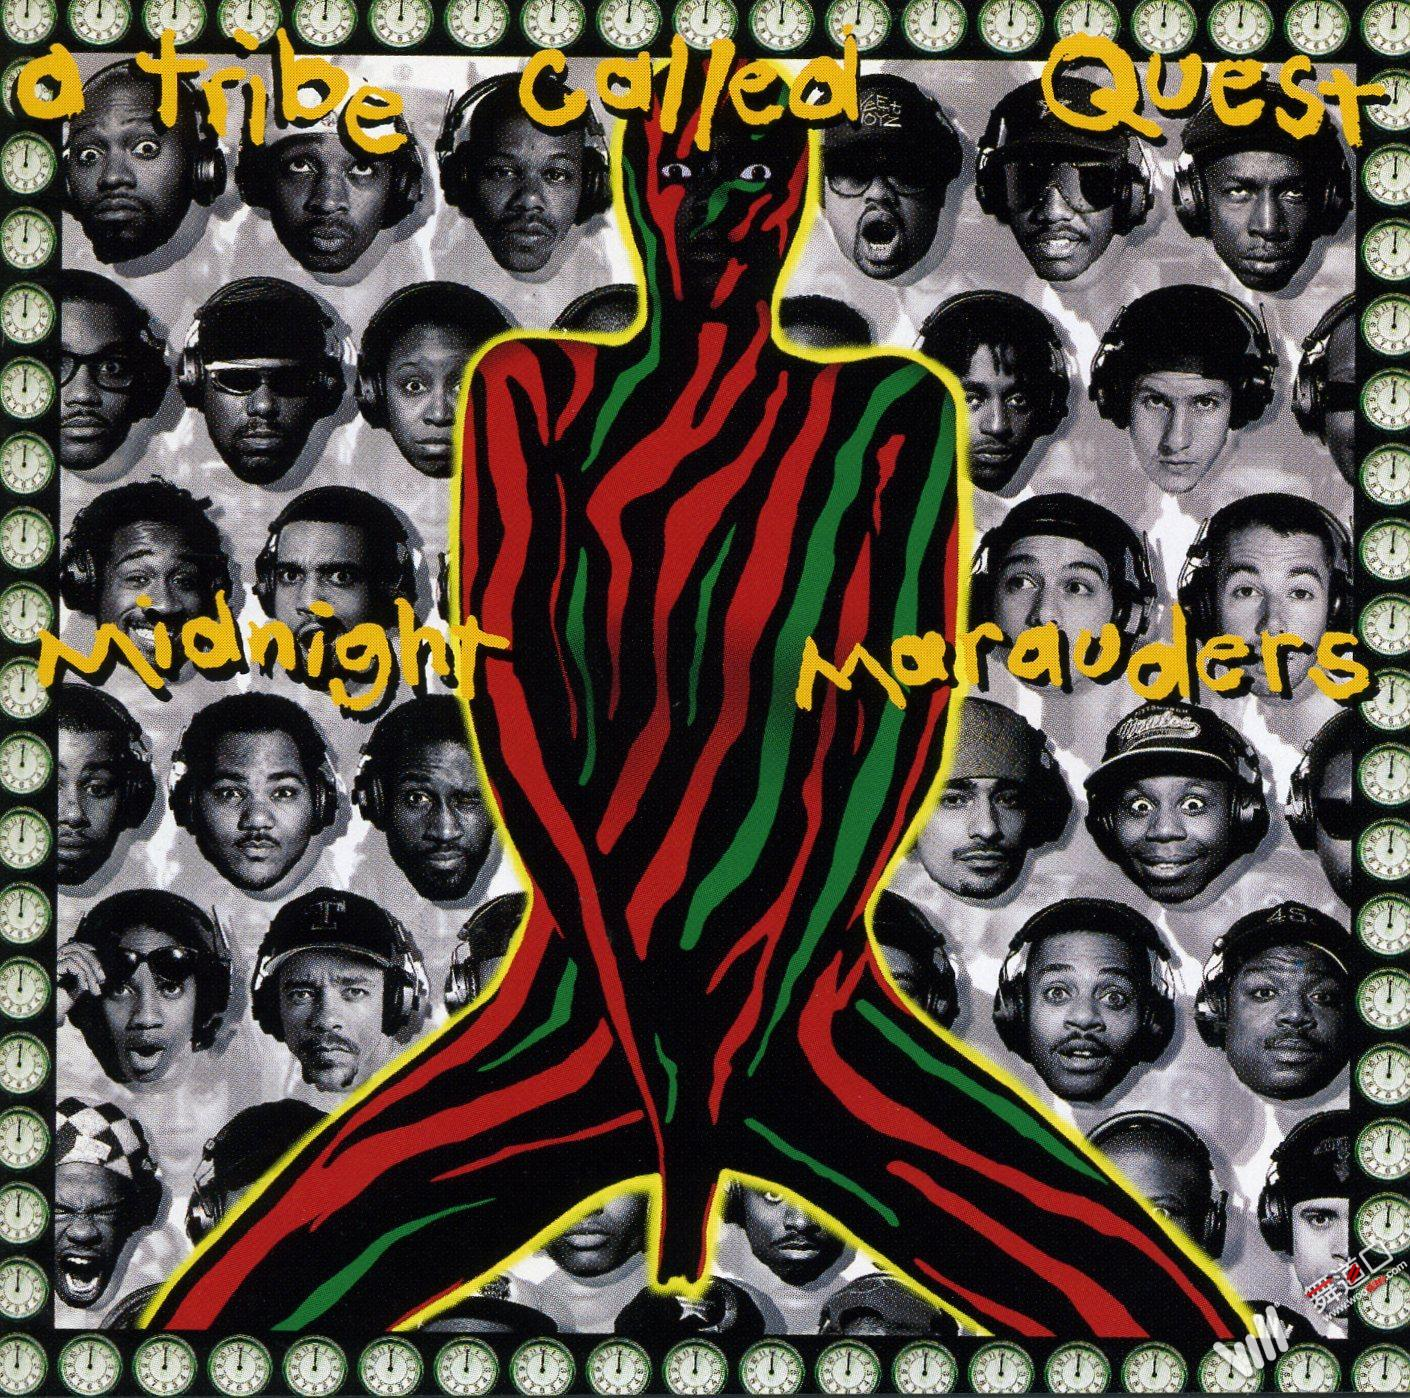 MidnightMarauders